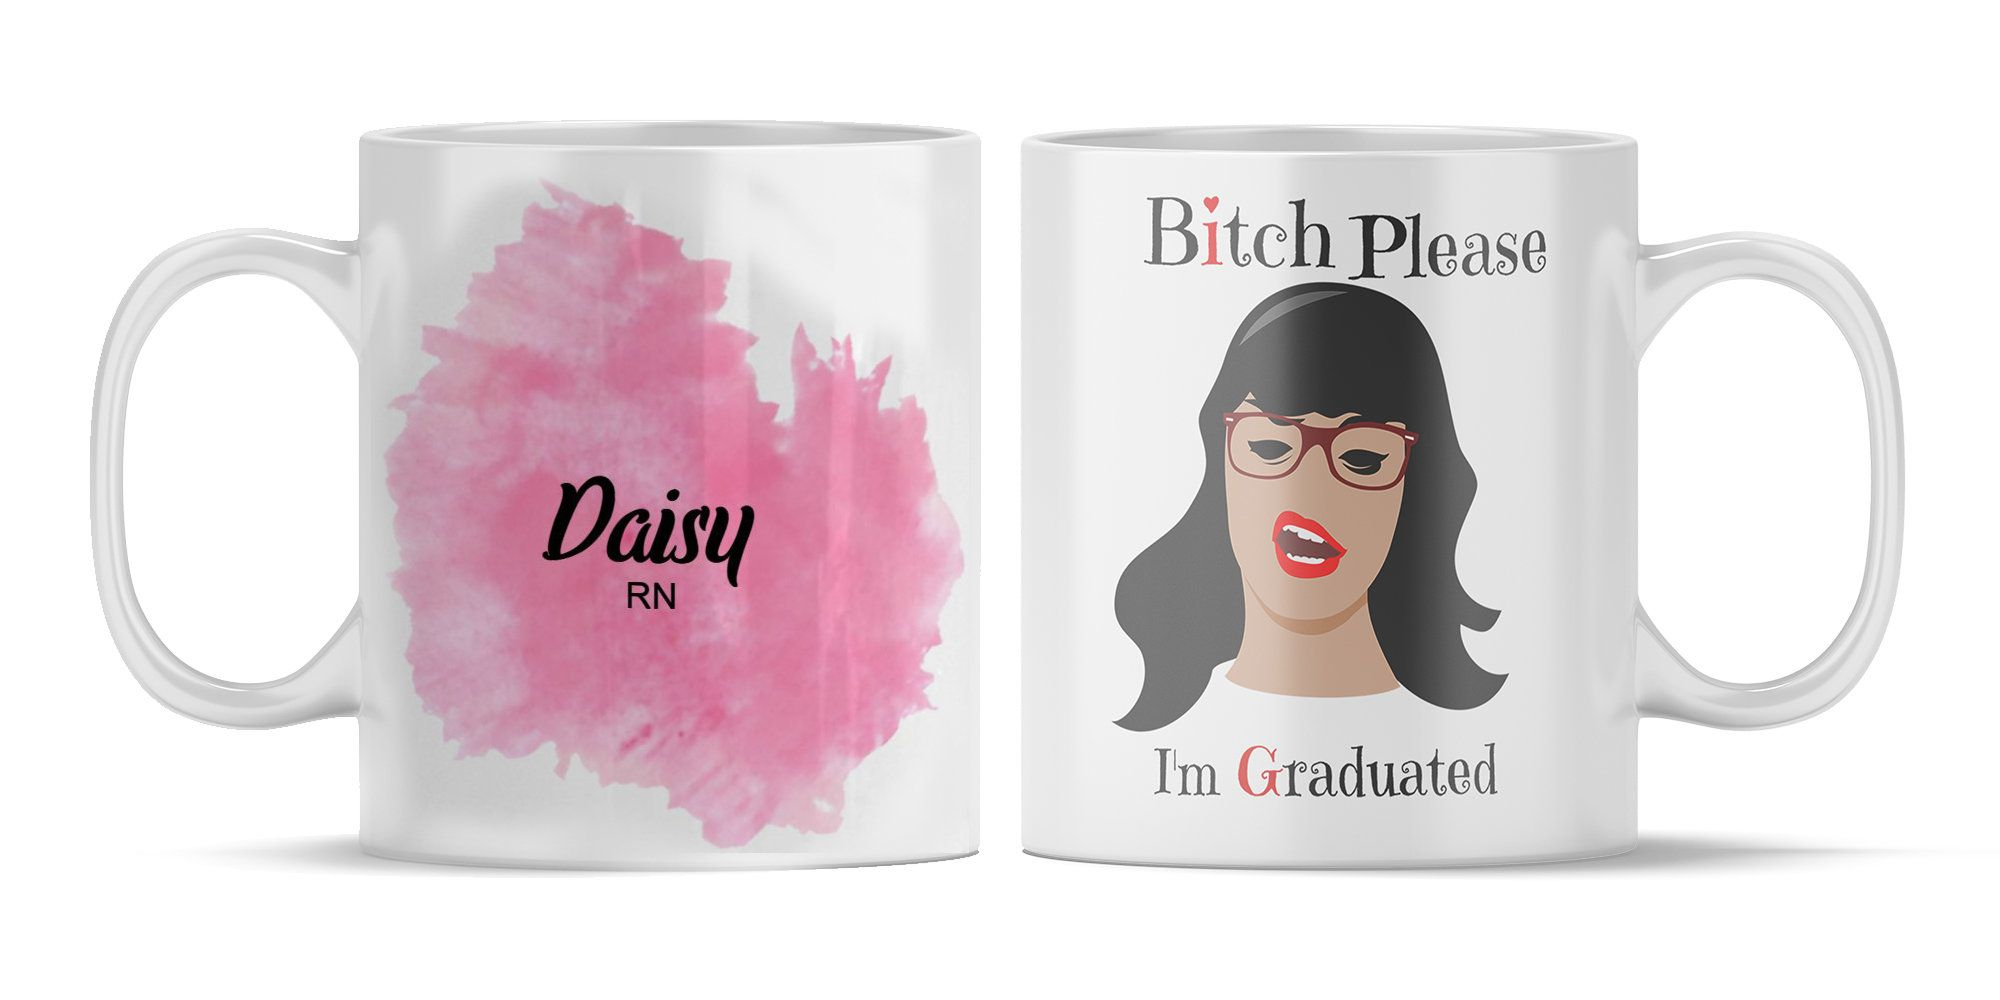 Best High School Graduation Gifts For Her 2021